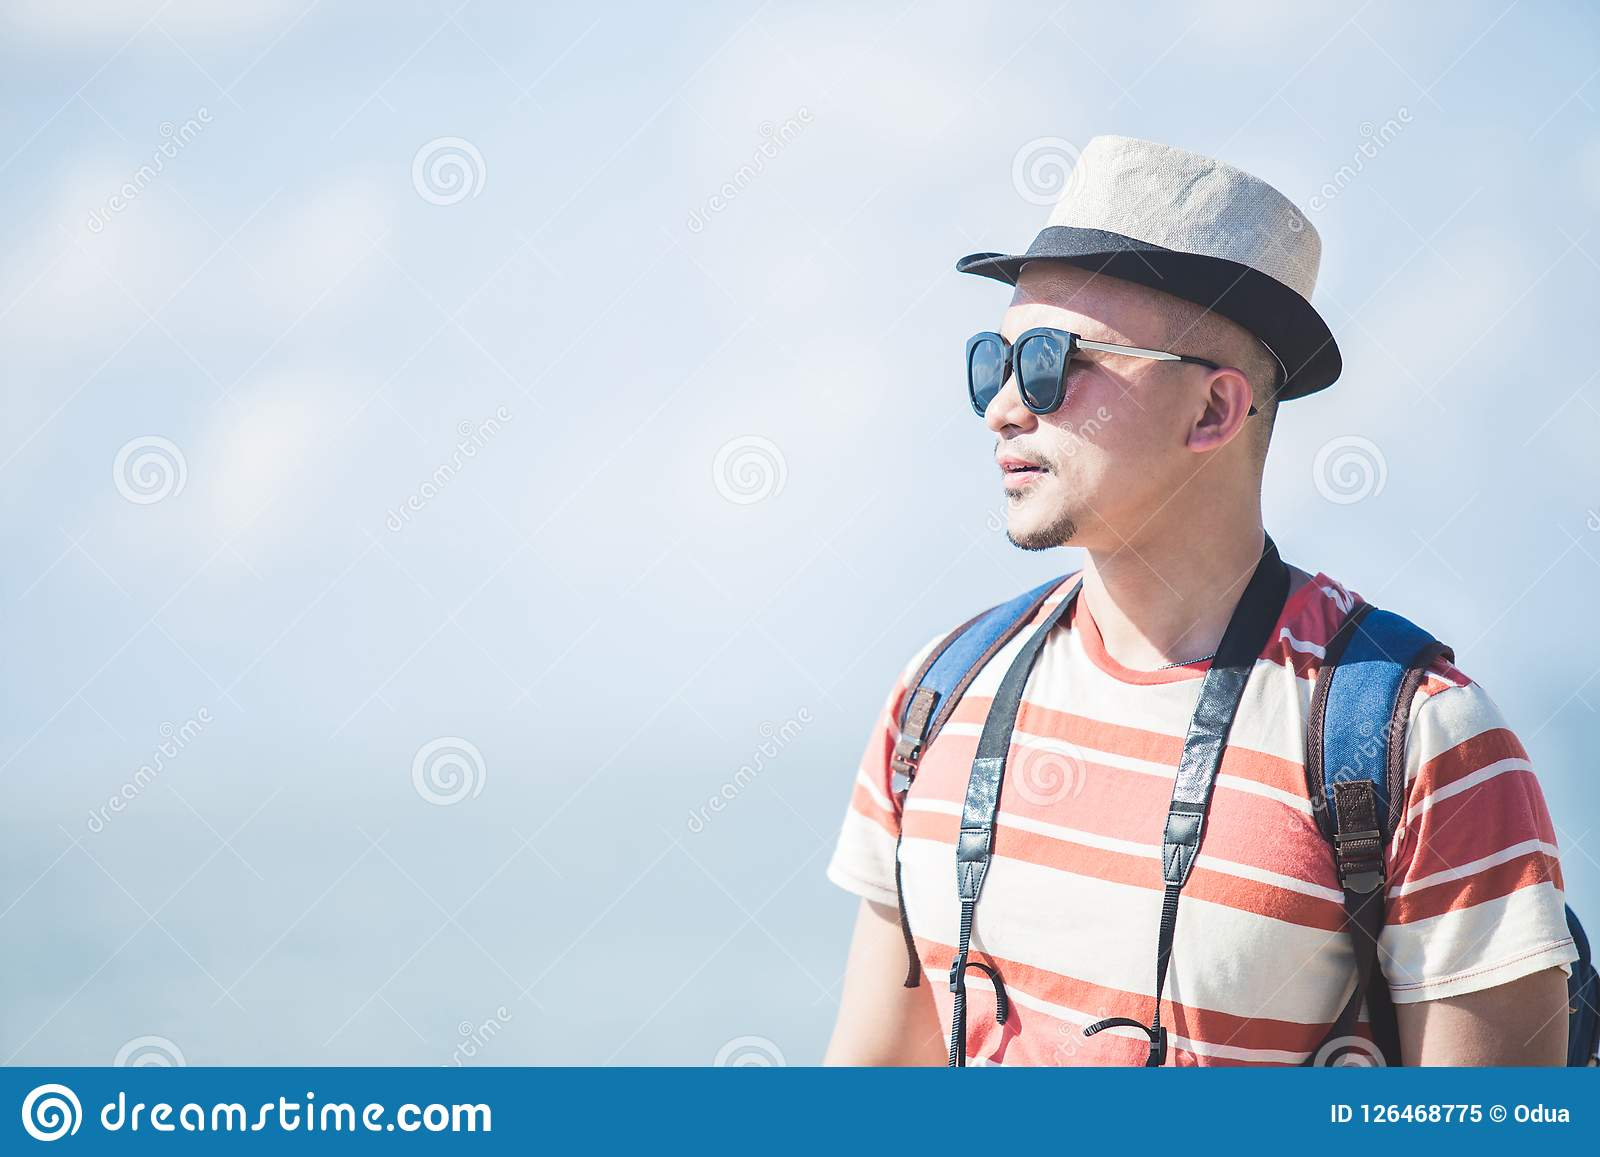 Solo traveller wearing summer hat and sunglasses during vacation